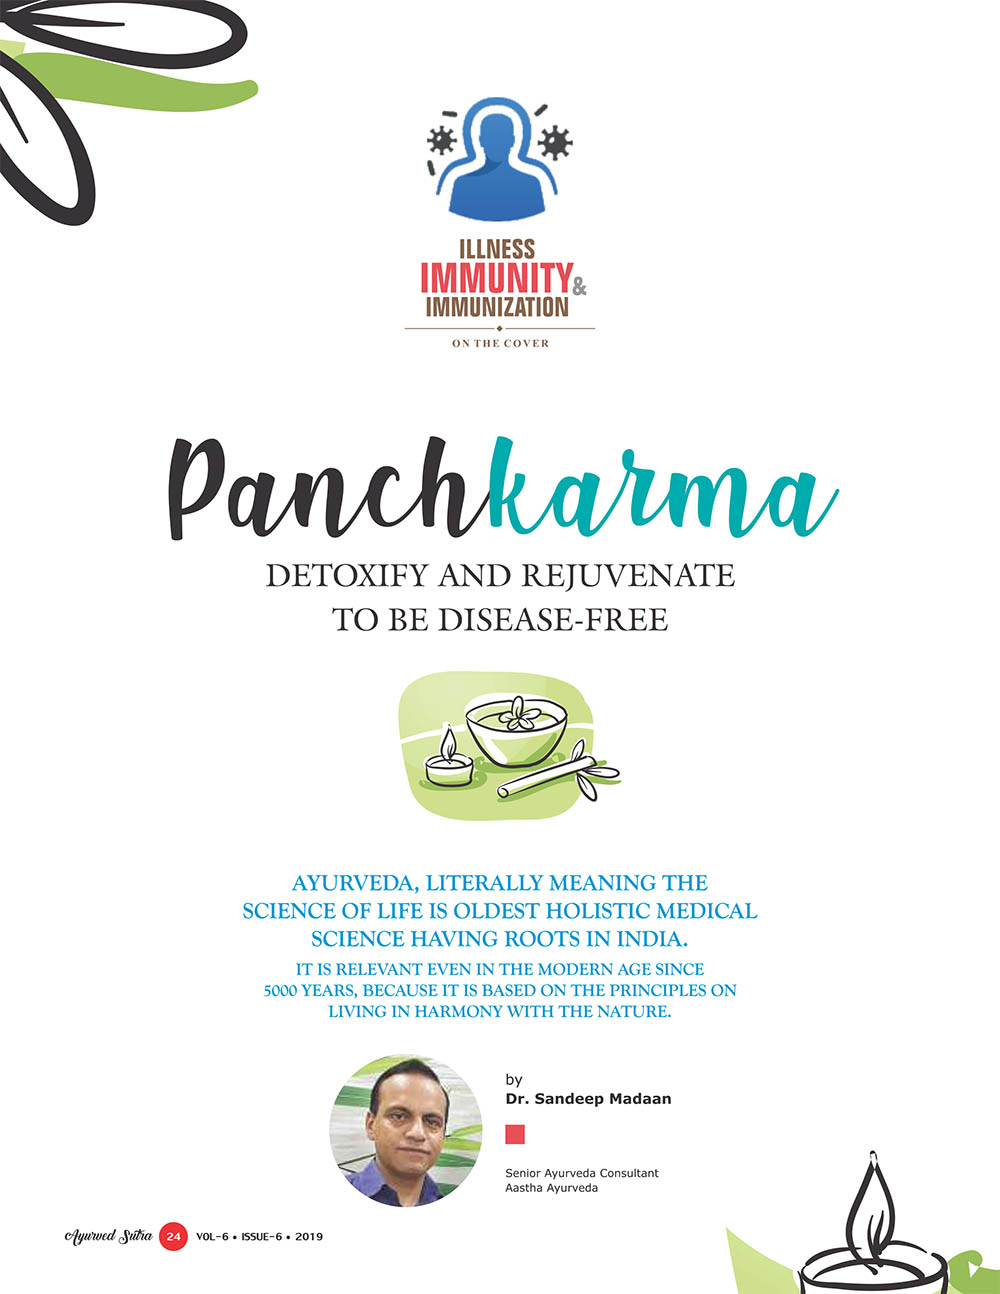 Ayurvedsutra Vol 06 issue 06 26 - Panchkarma: Detoxify and Rejuvenate to be disease-free